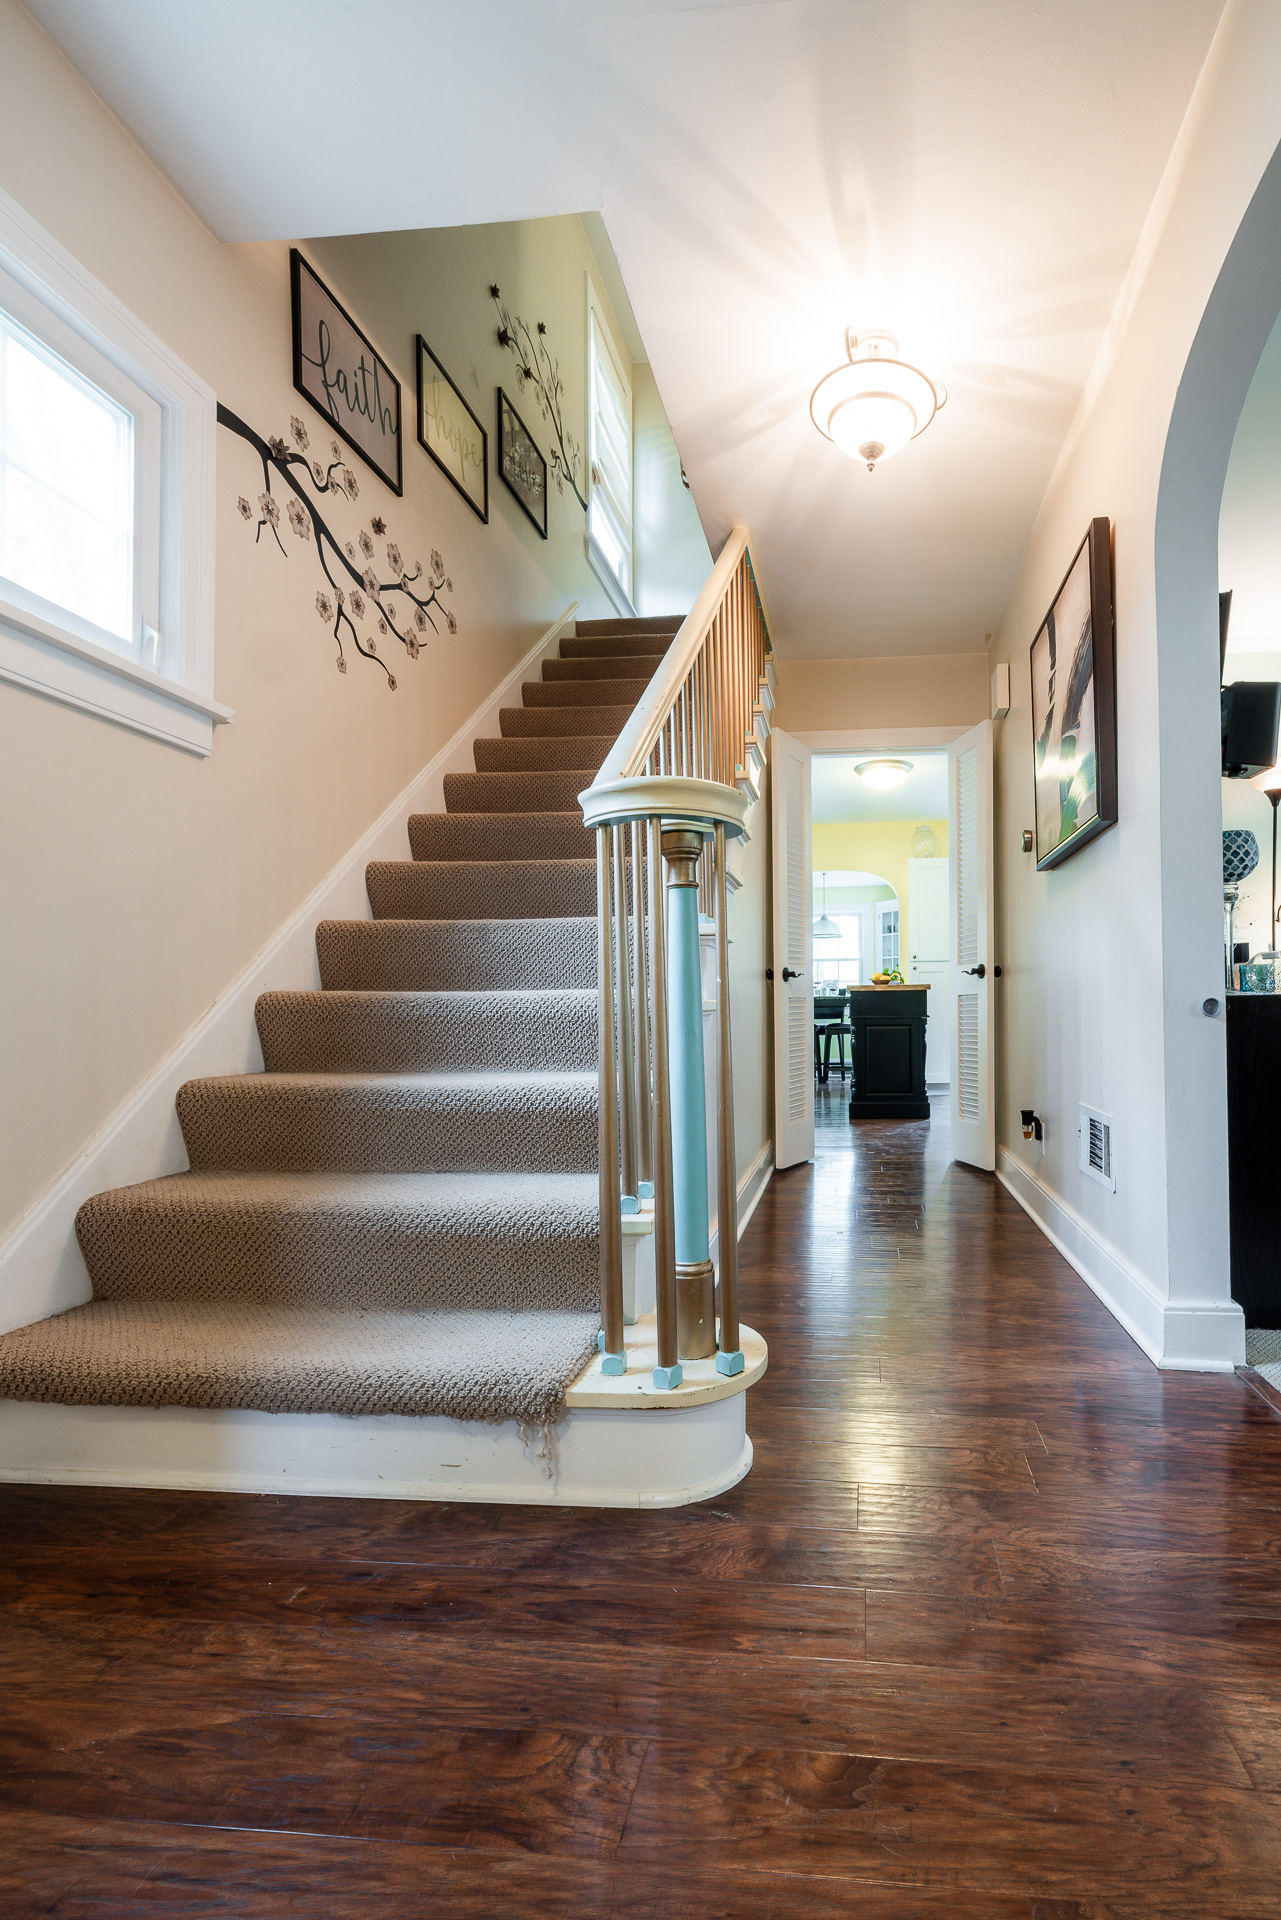 Real Estate photo of interior staircase and hallway.